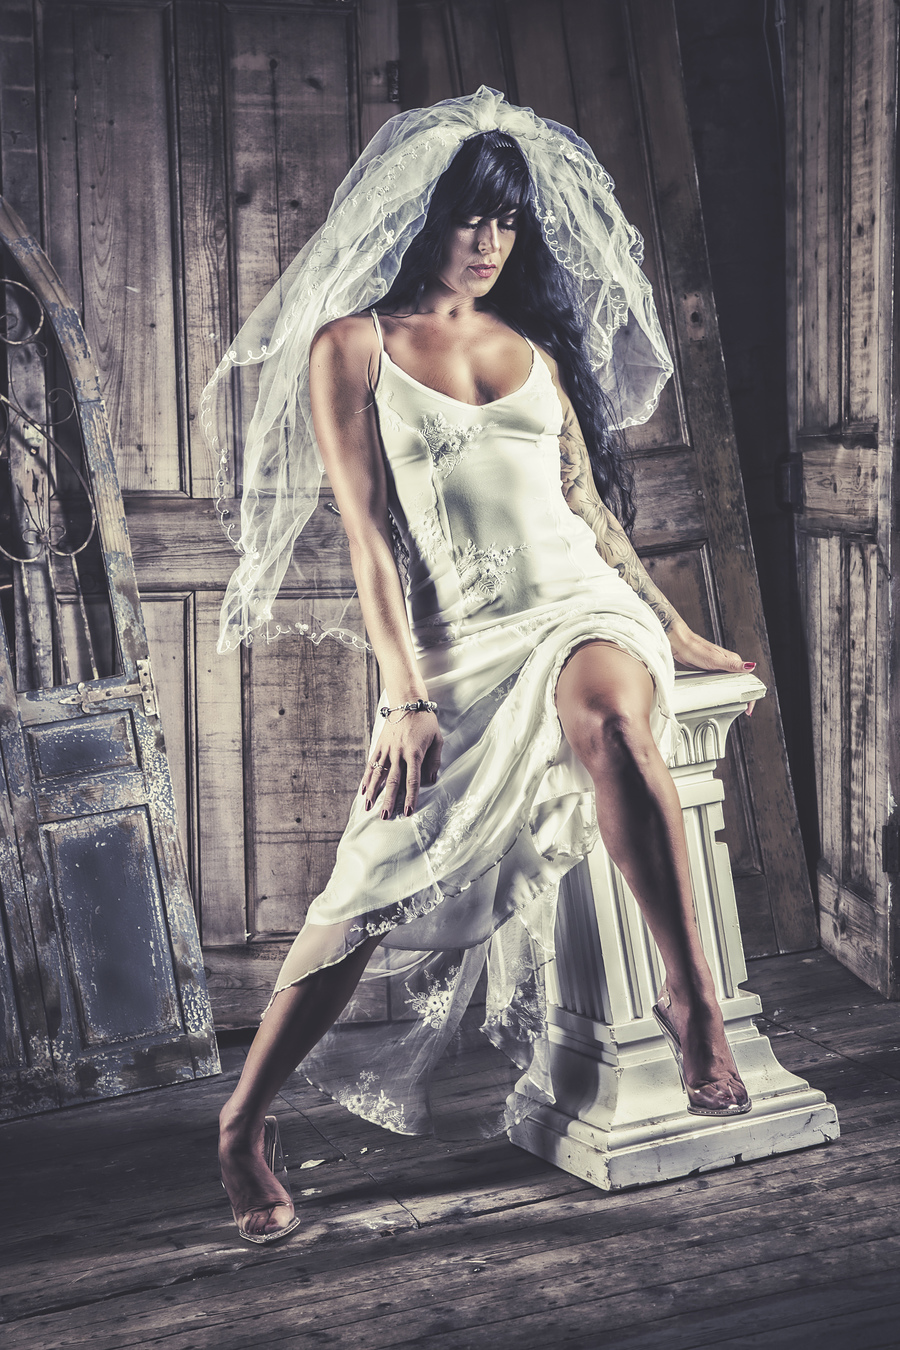 Bridal thoughts / Photography by Paul Lucas Photography, Model Michelle Gavin, Post processing by Paul Lucas Photography, Stylist Michelle Gavin, Taken at Studio Fifty Eight / Uploaded 4th April 2021 @ 10:07 AM